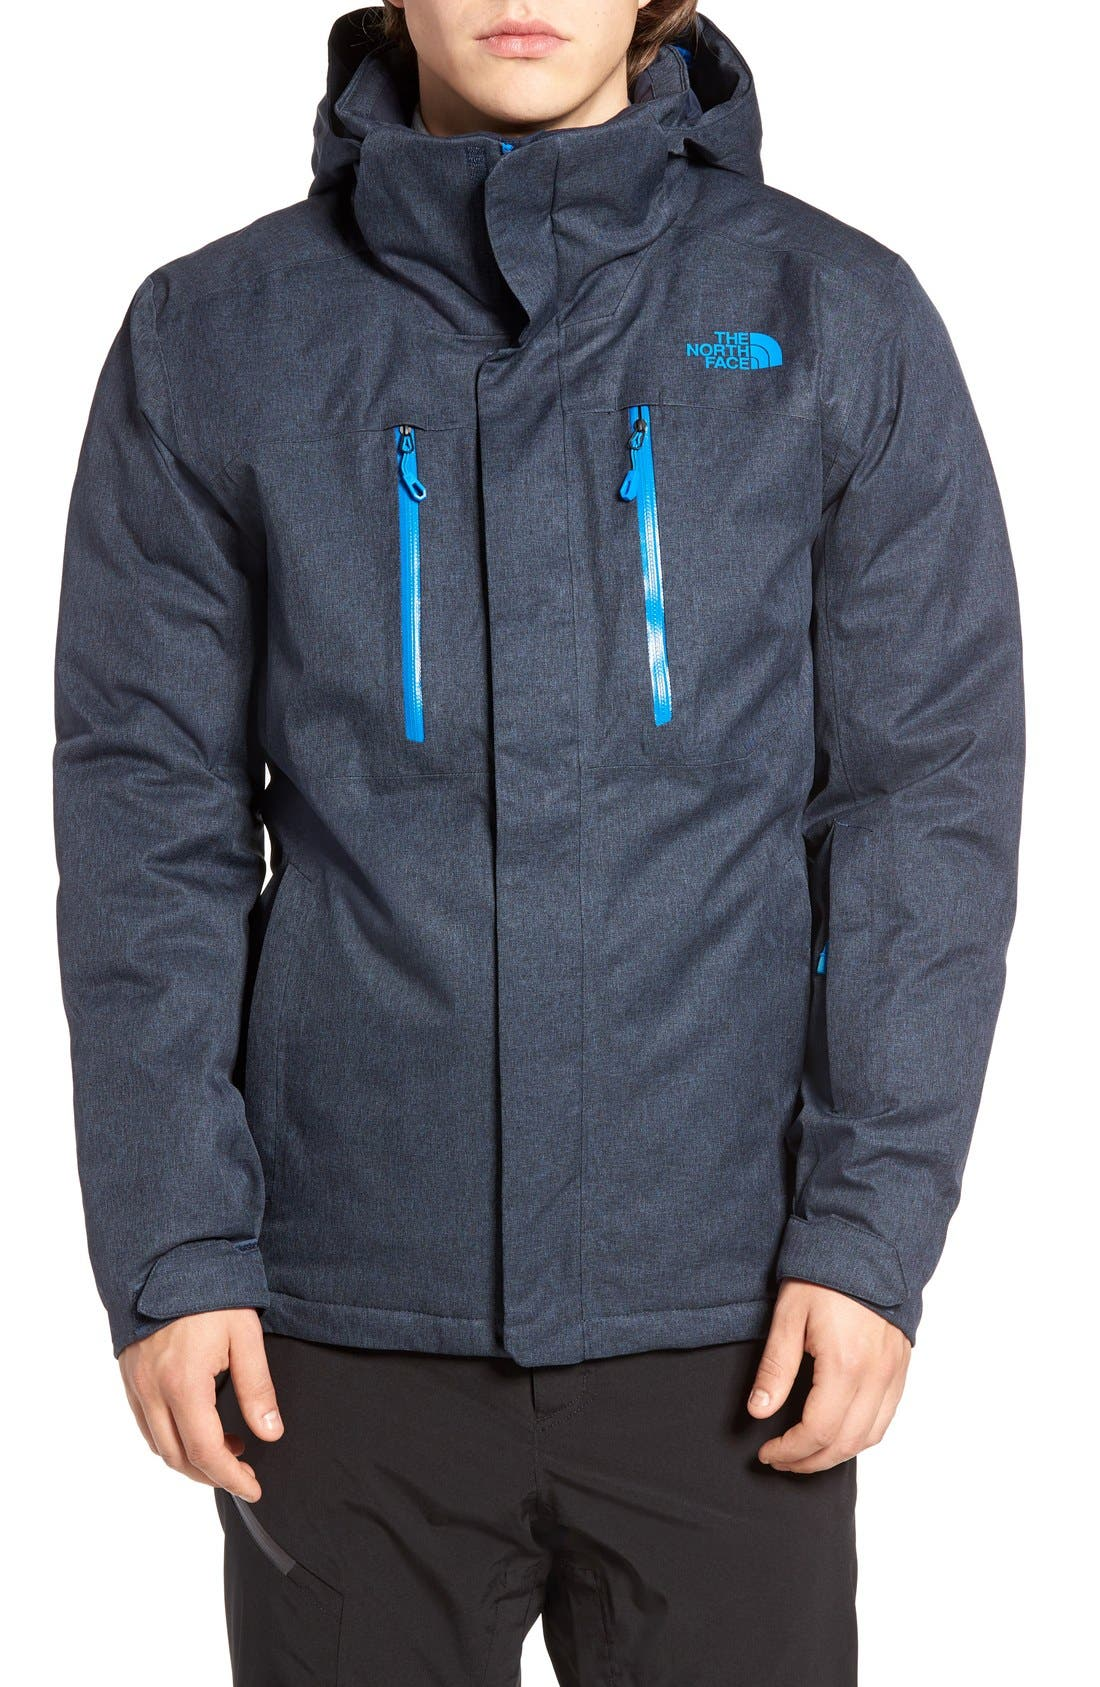 Main Image - The North Face Powdance Waterproof Jacket